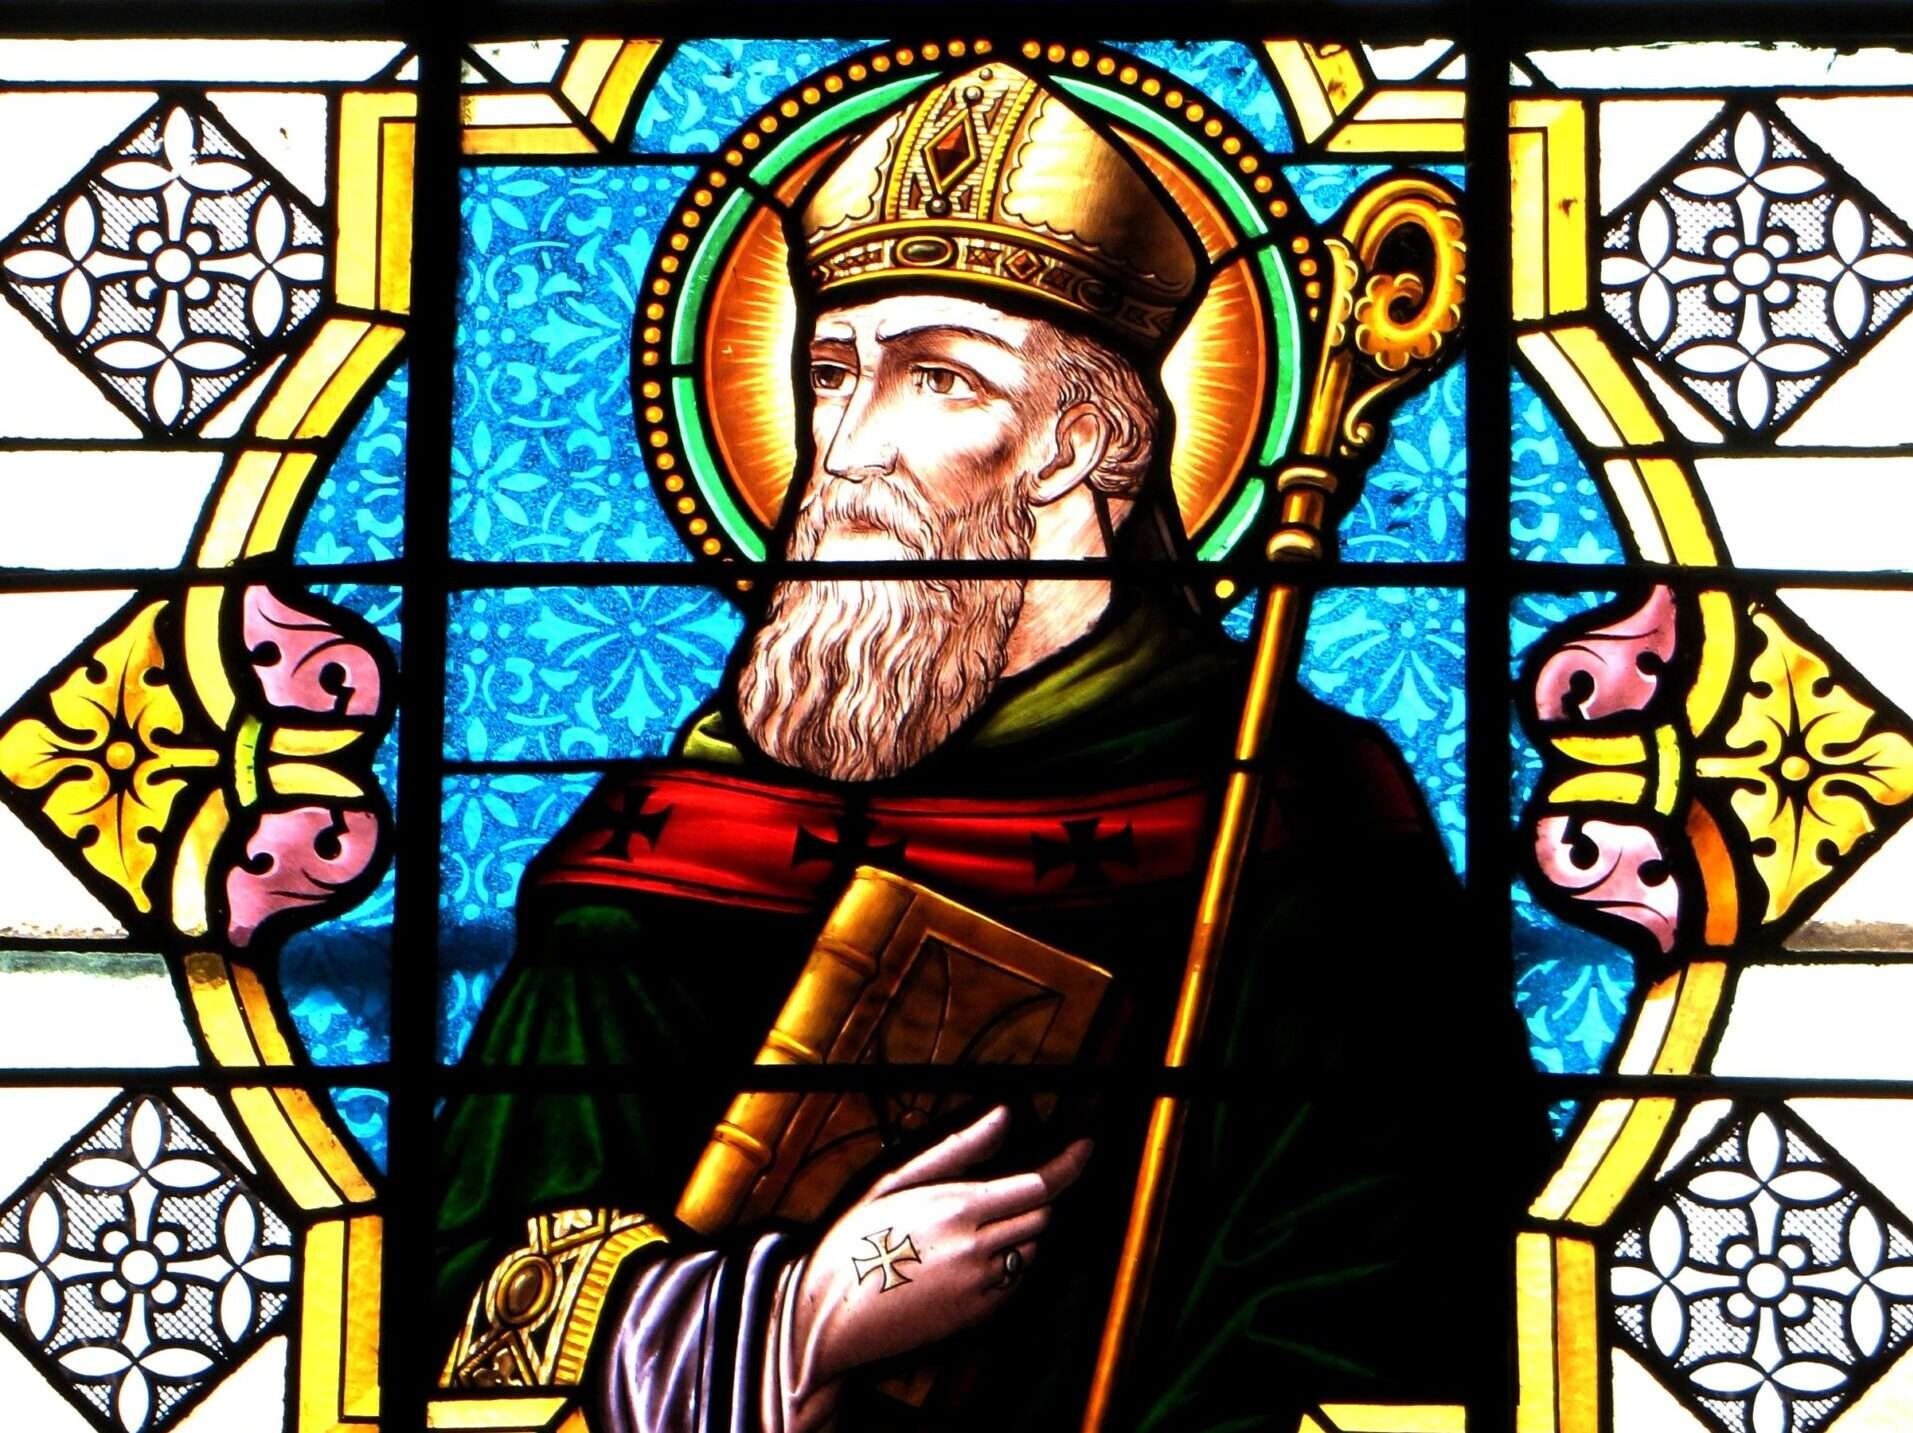 The reason St. Augustine gives us a helpful teaching in the internet age